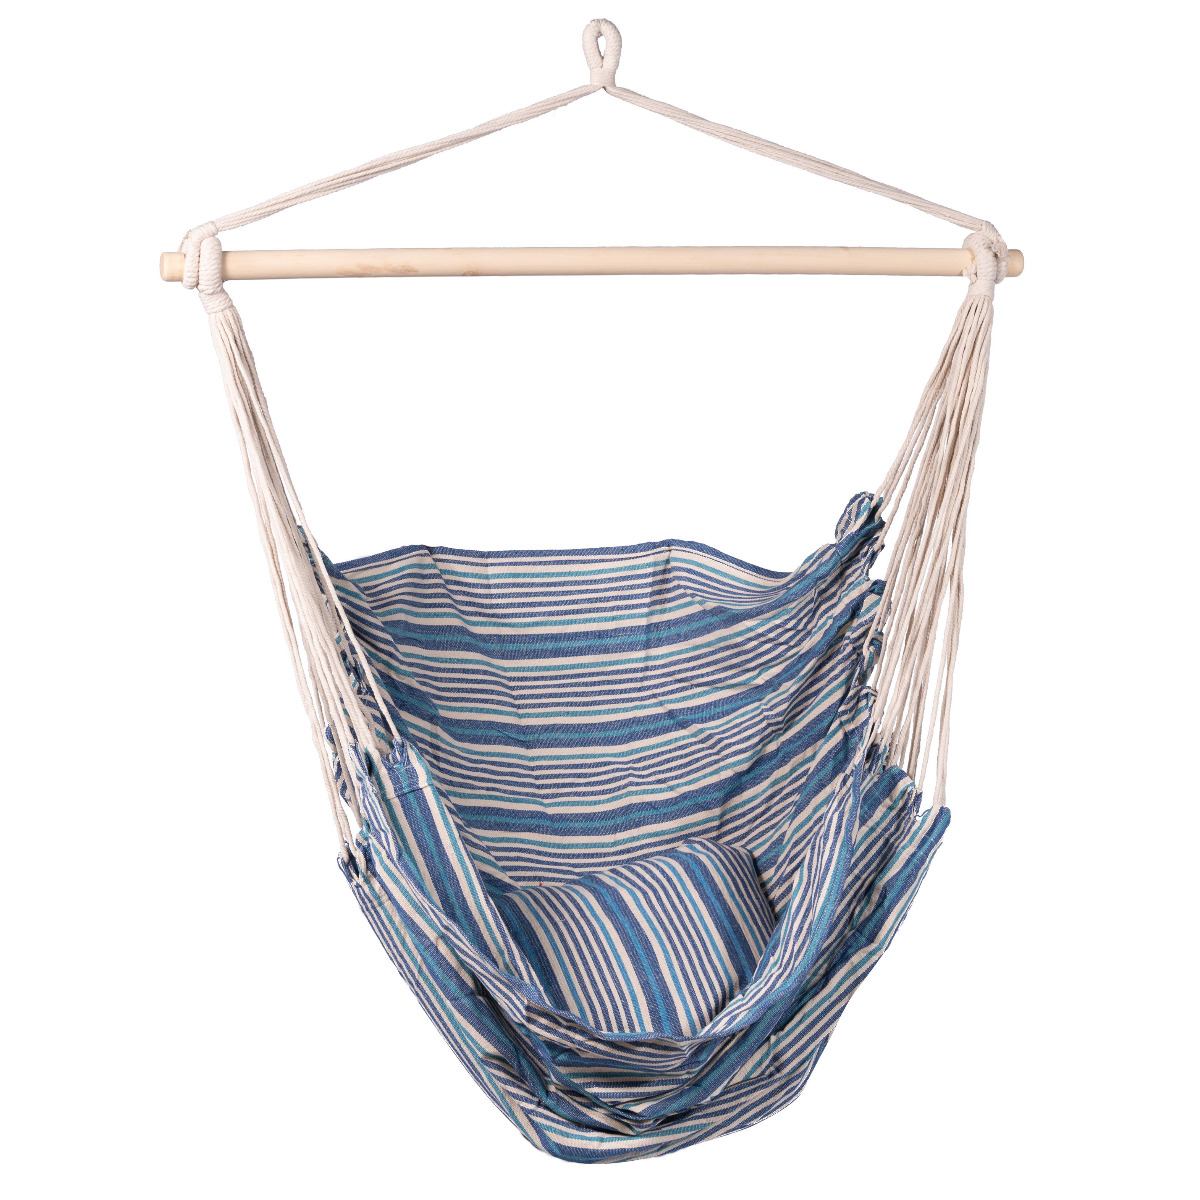 'Rustic' Single Hangstoel - Veelkleurig - 123 Hammock